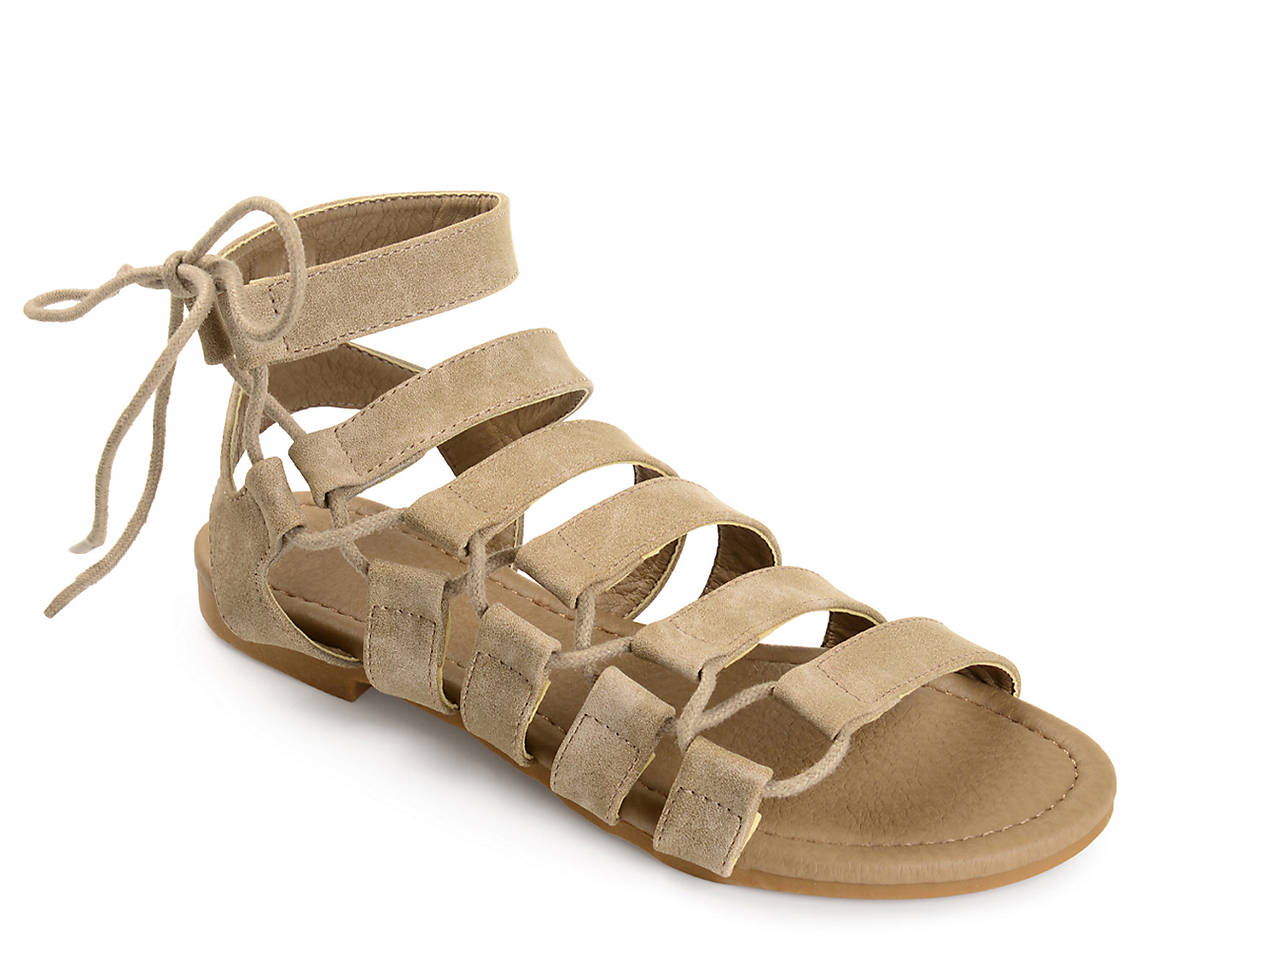 Cleo Gladiator Sandal by Journee Collection